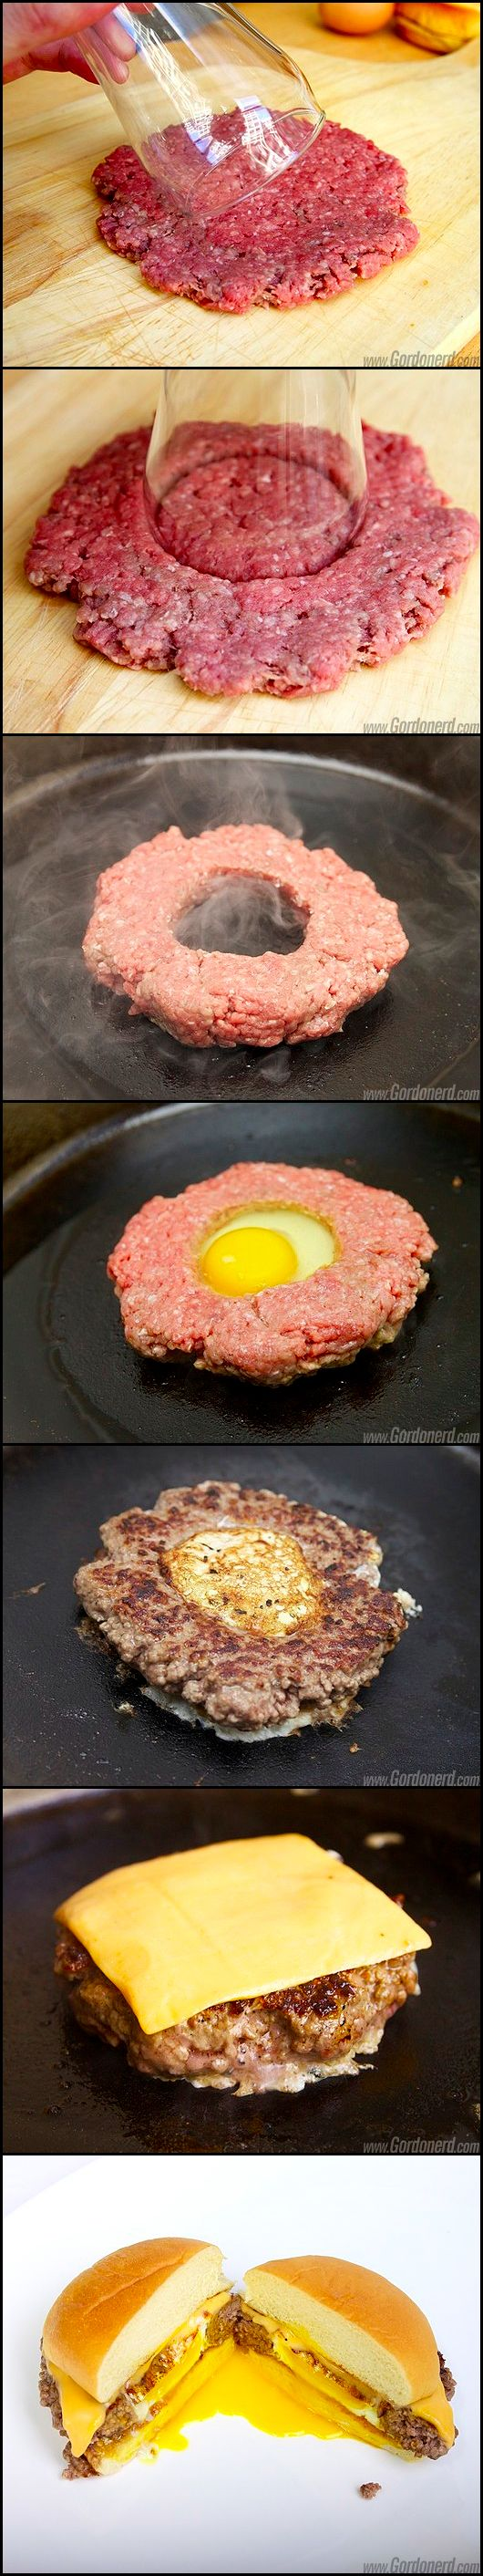 Use sausage and have the perfect breakfast sandwiches! Or could do this